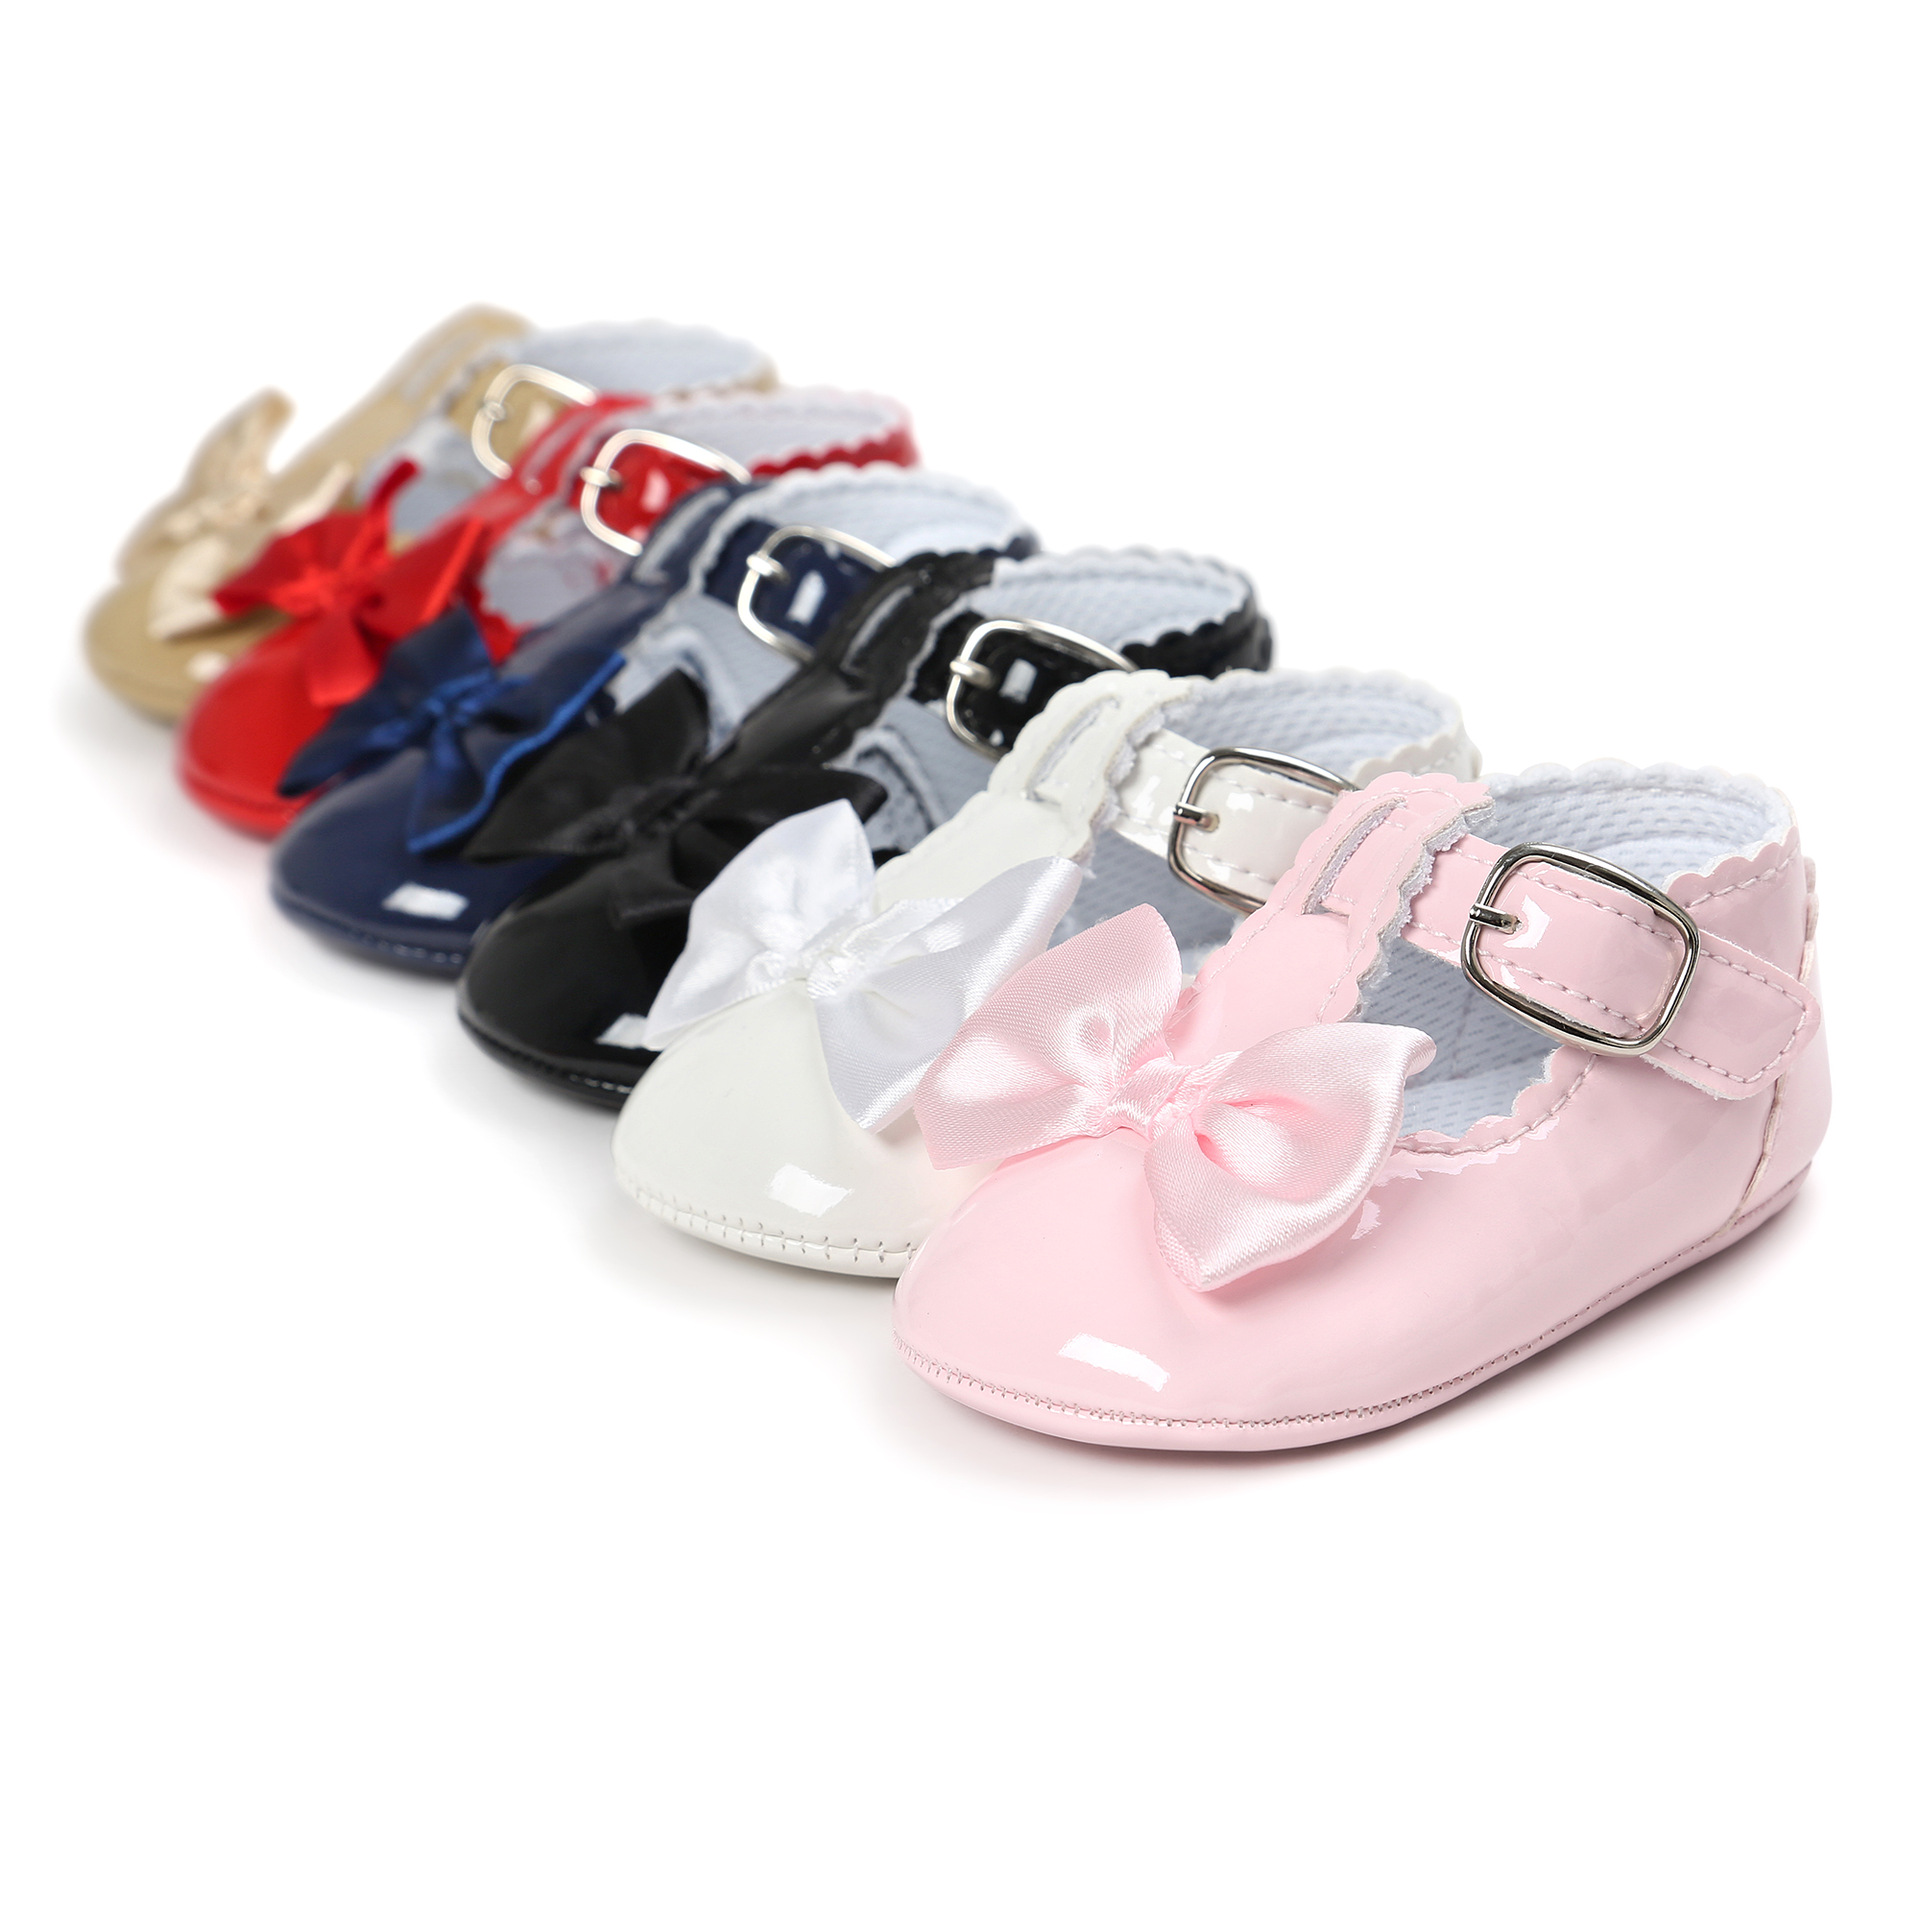 Spring Pink Bow-Knot Baby Shoes Girl Infant Shoes Flowers Princess Toddler Shoes First Walkers